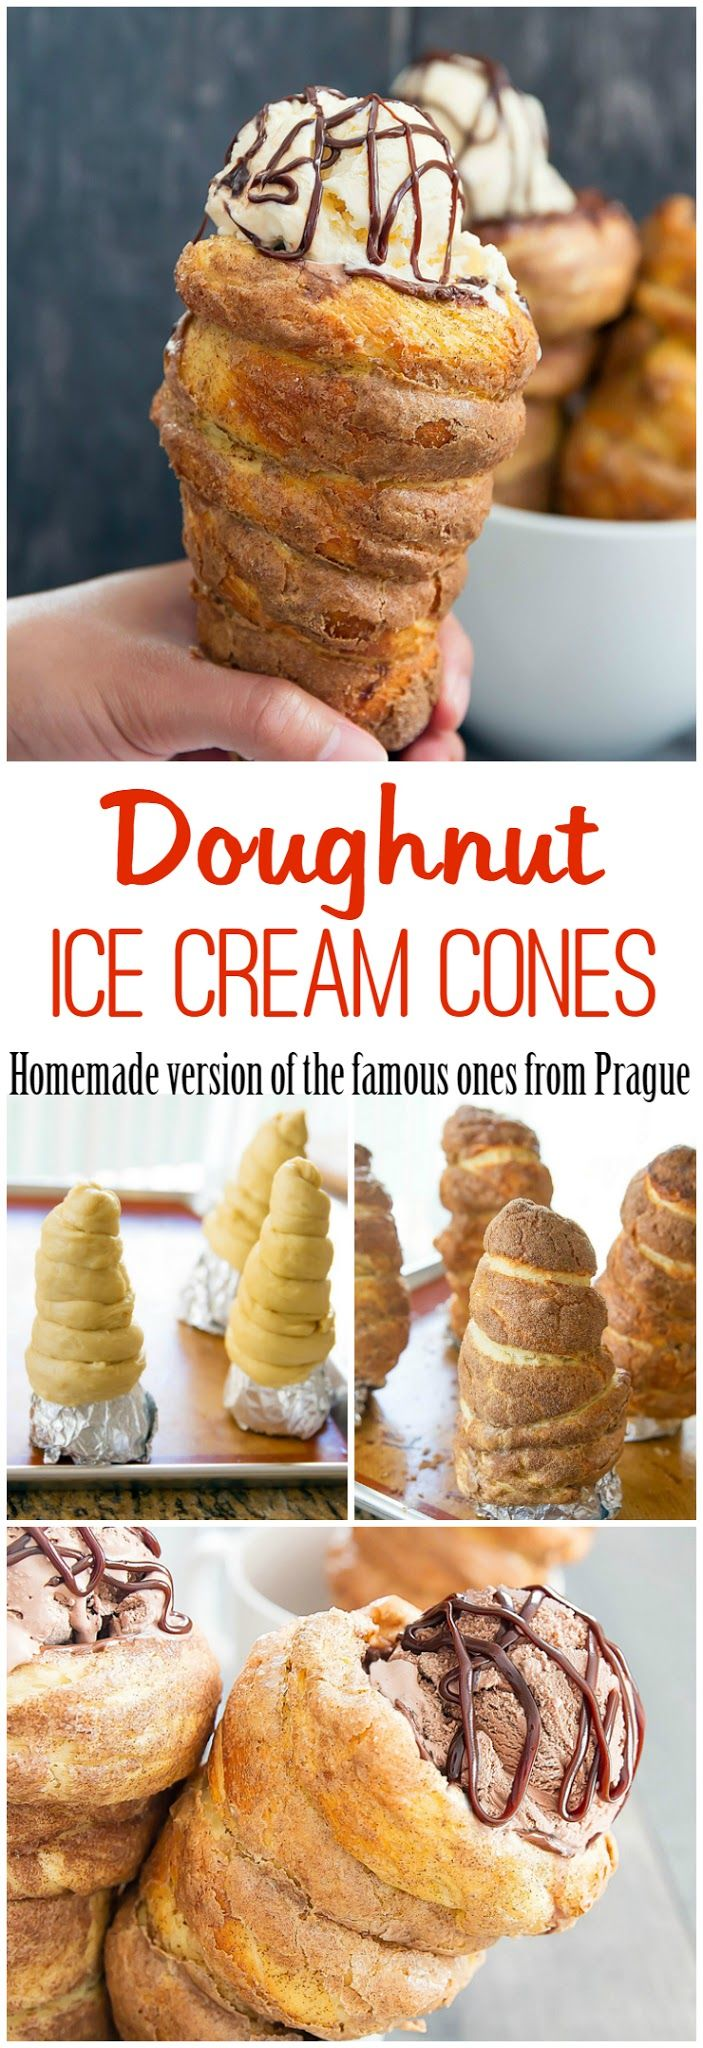 Doughnut Ice Cream Cones! Homemade version of the famous ones from Prague also known as chimney cakes and trdelníks.